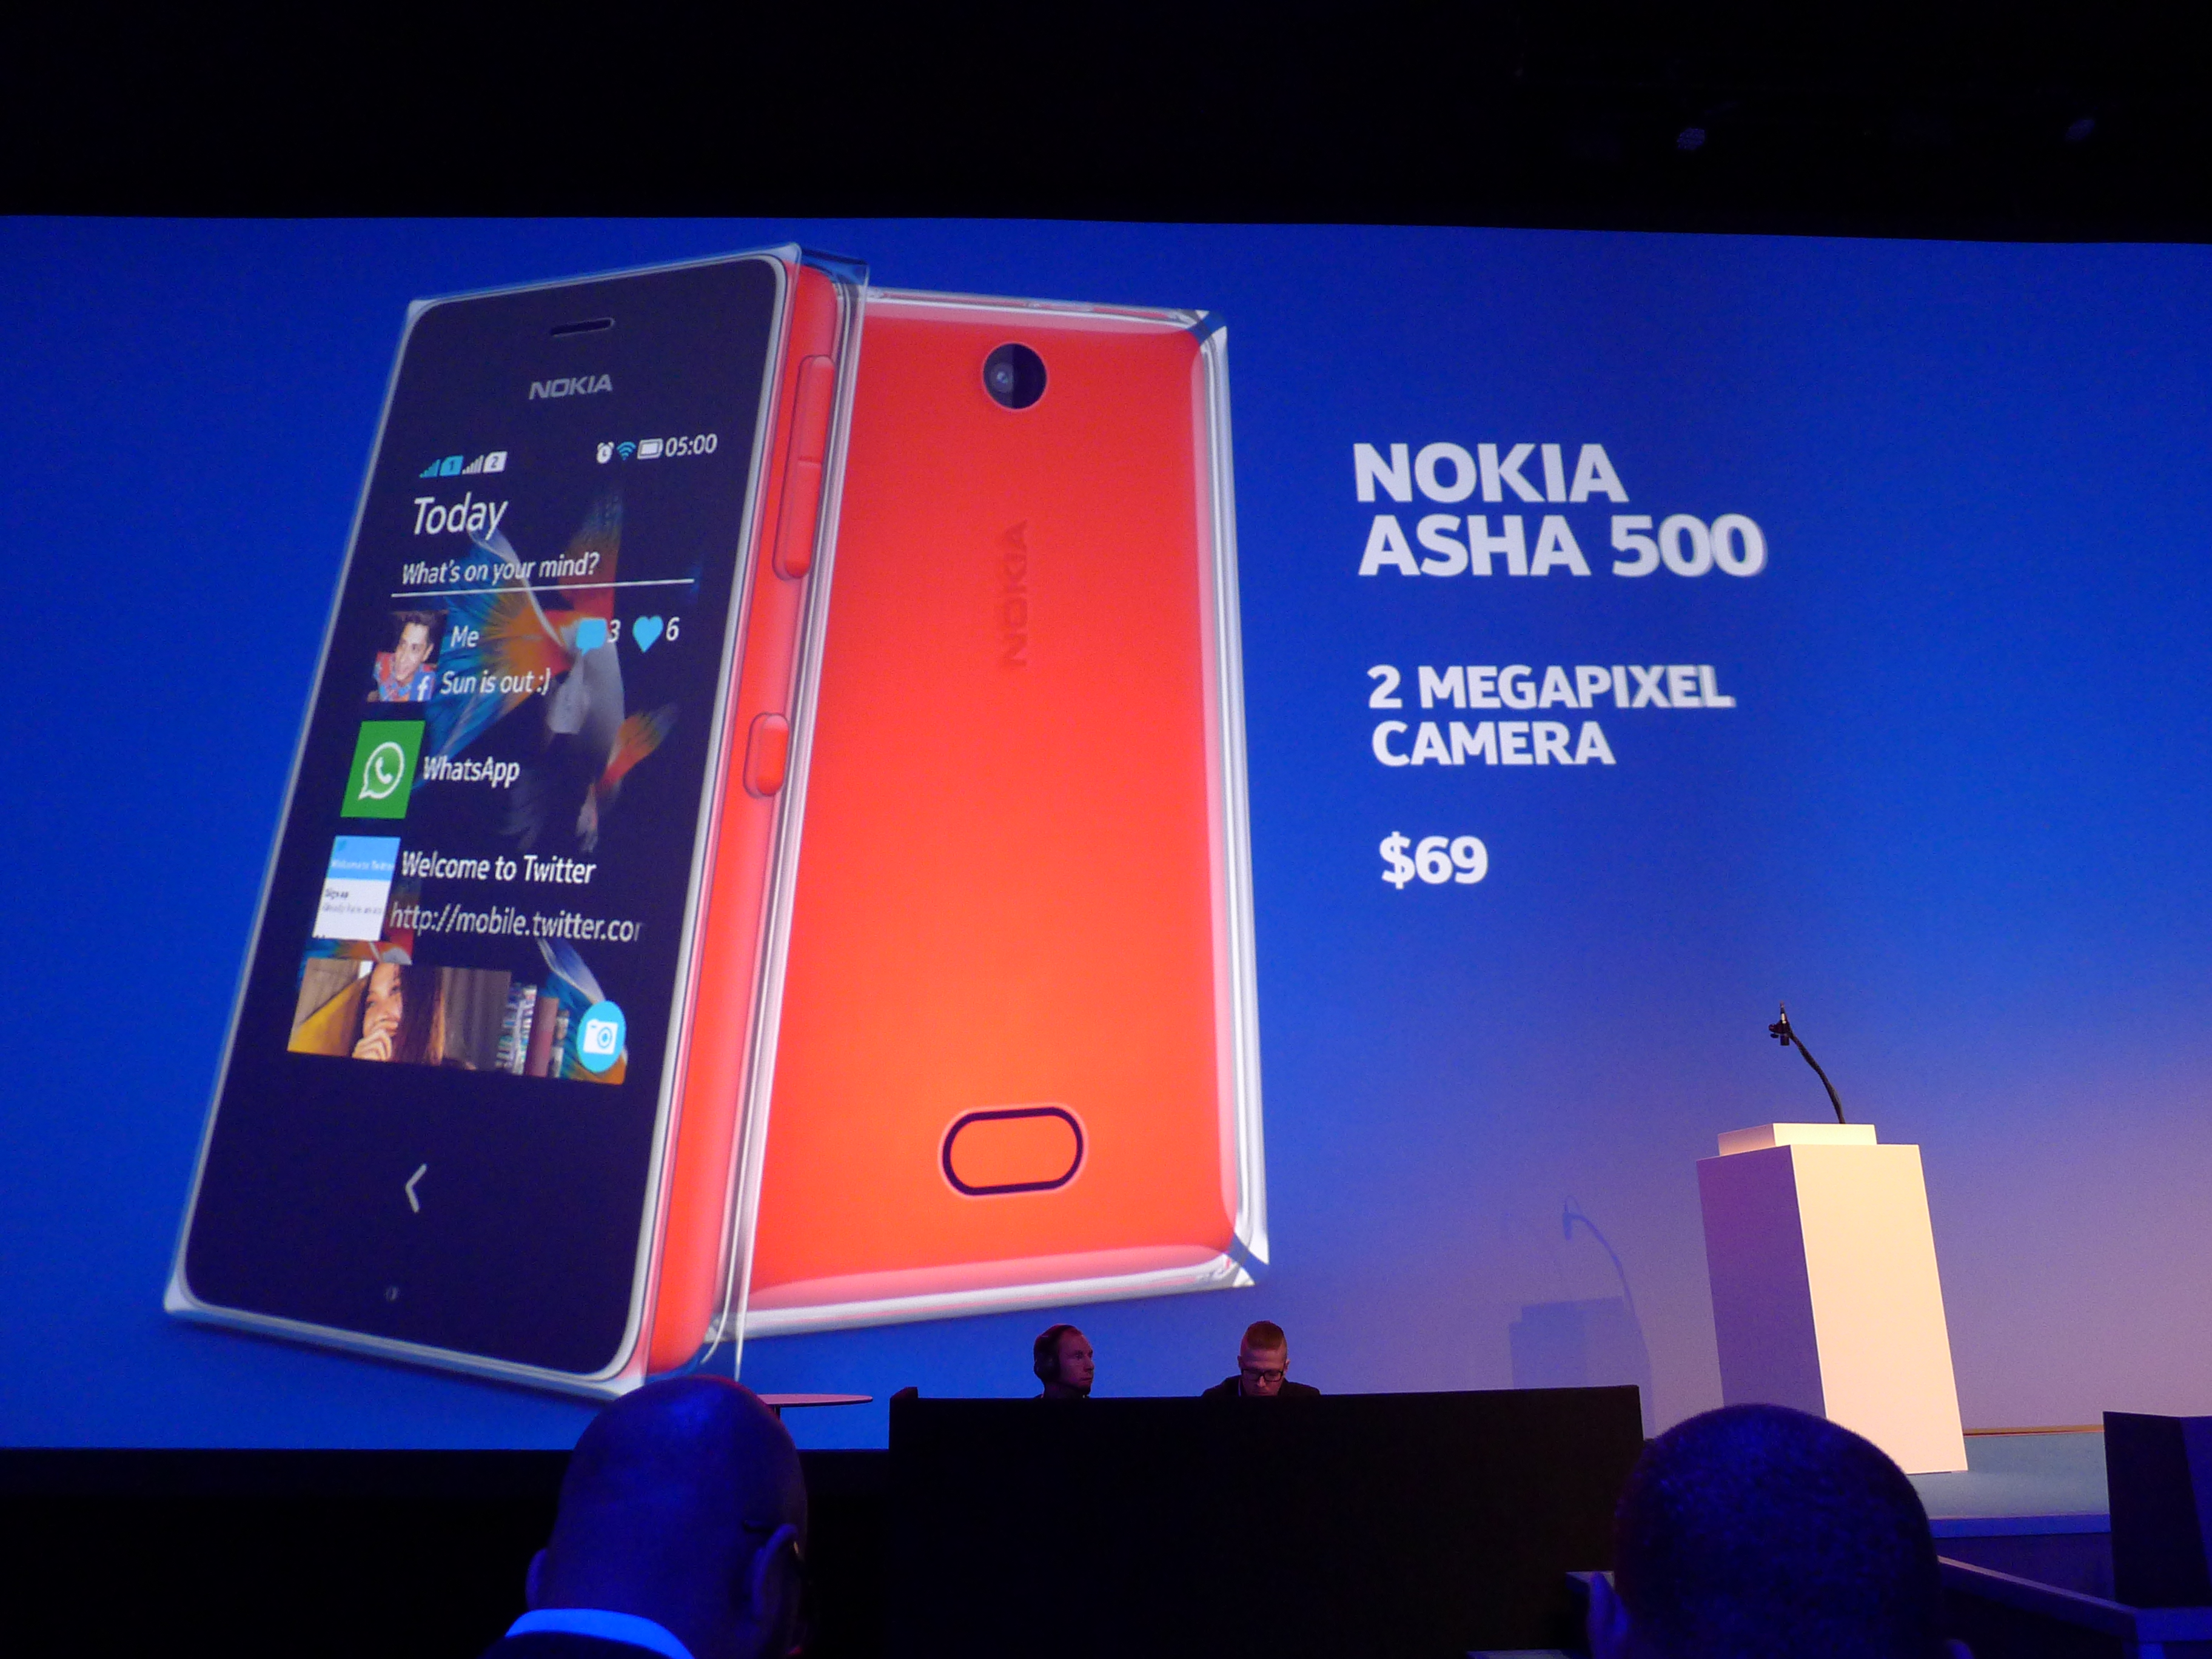 P1040465 Nokia announces Asha 500 for $69, Asha 502 for $89, and Asha 503 for $99